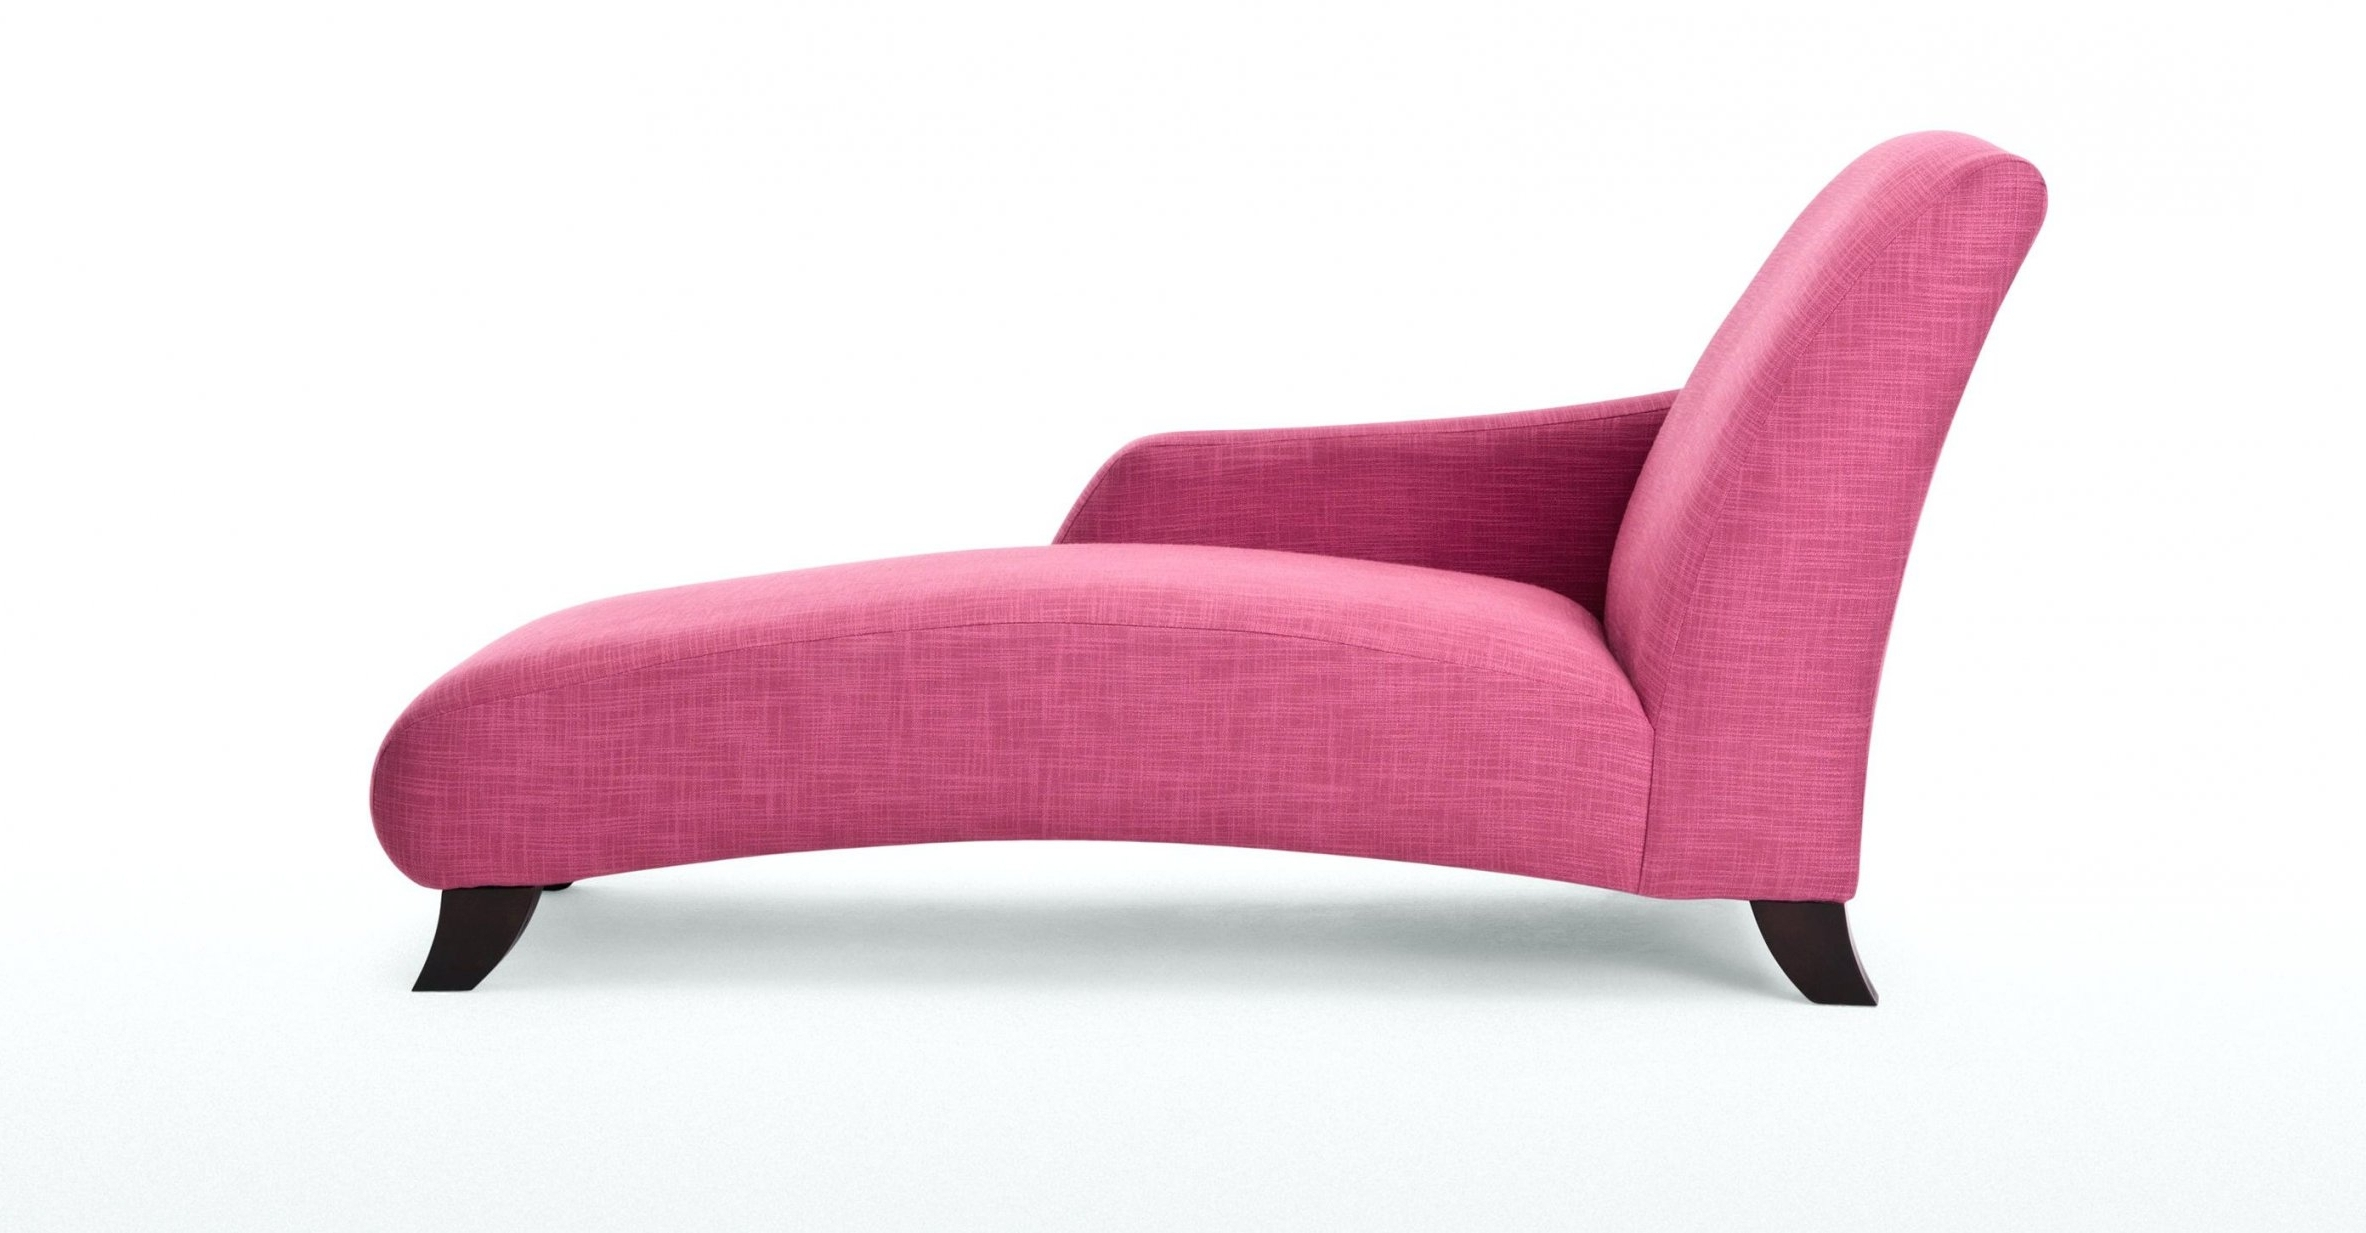 Famous Pink Chaise Lounge Sofa Inside Pink Chaise Lounges (View 12 of 15)